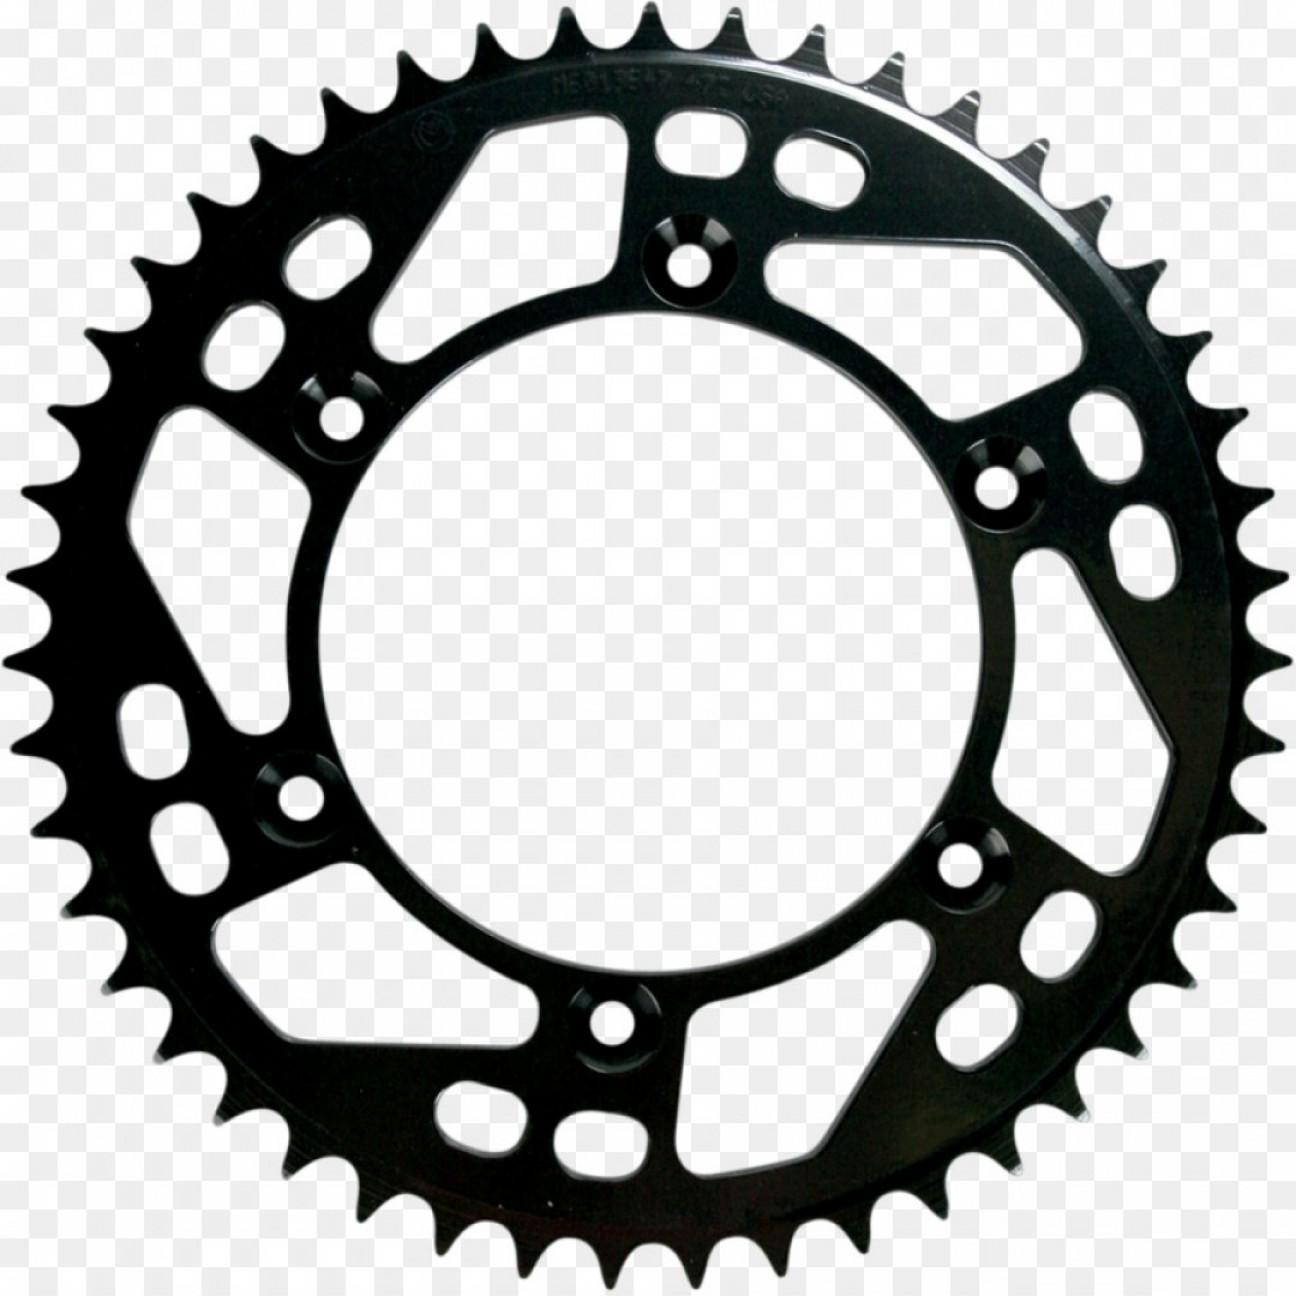 Png Roller Chain Sprocket Bicycle Motorcycle Clip Art.